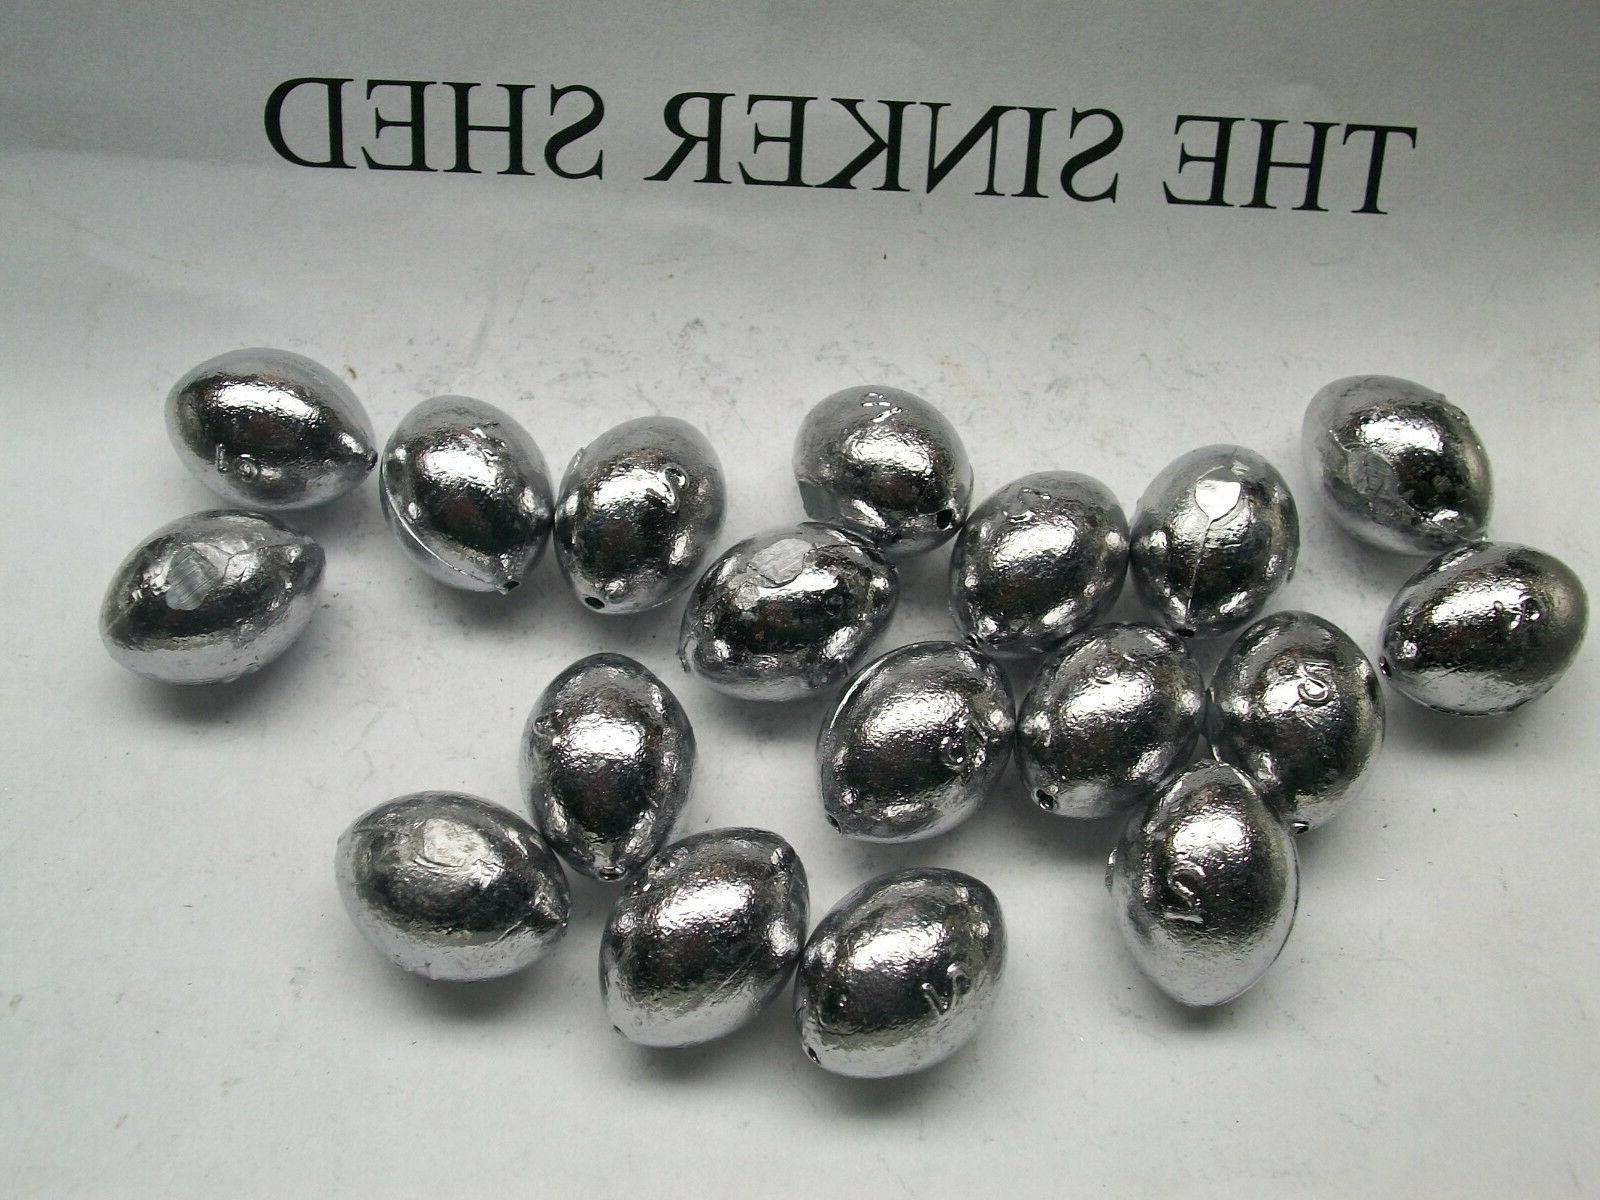 2 oz egg sinkers  - quantity of 5/10/20/30/40/50/100/200 - F